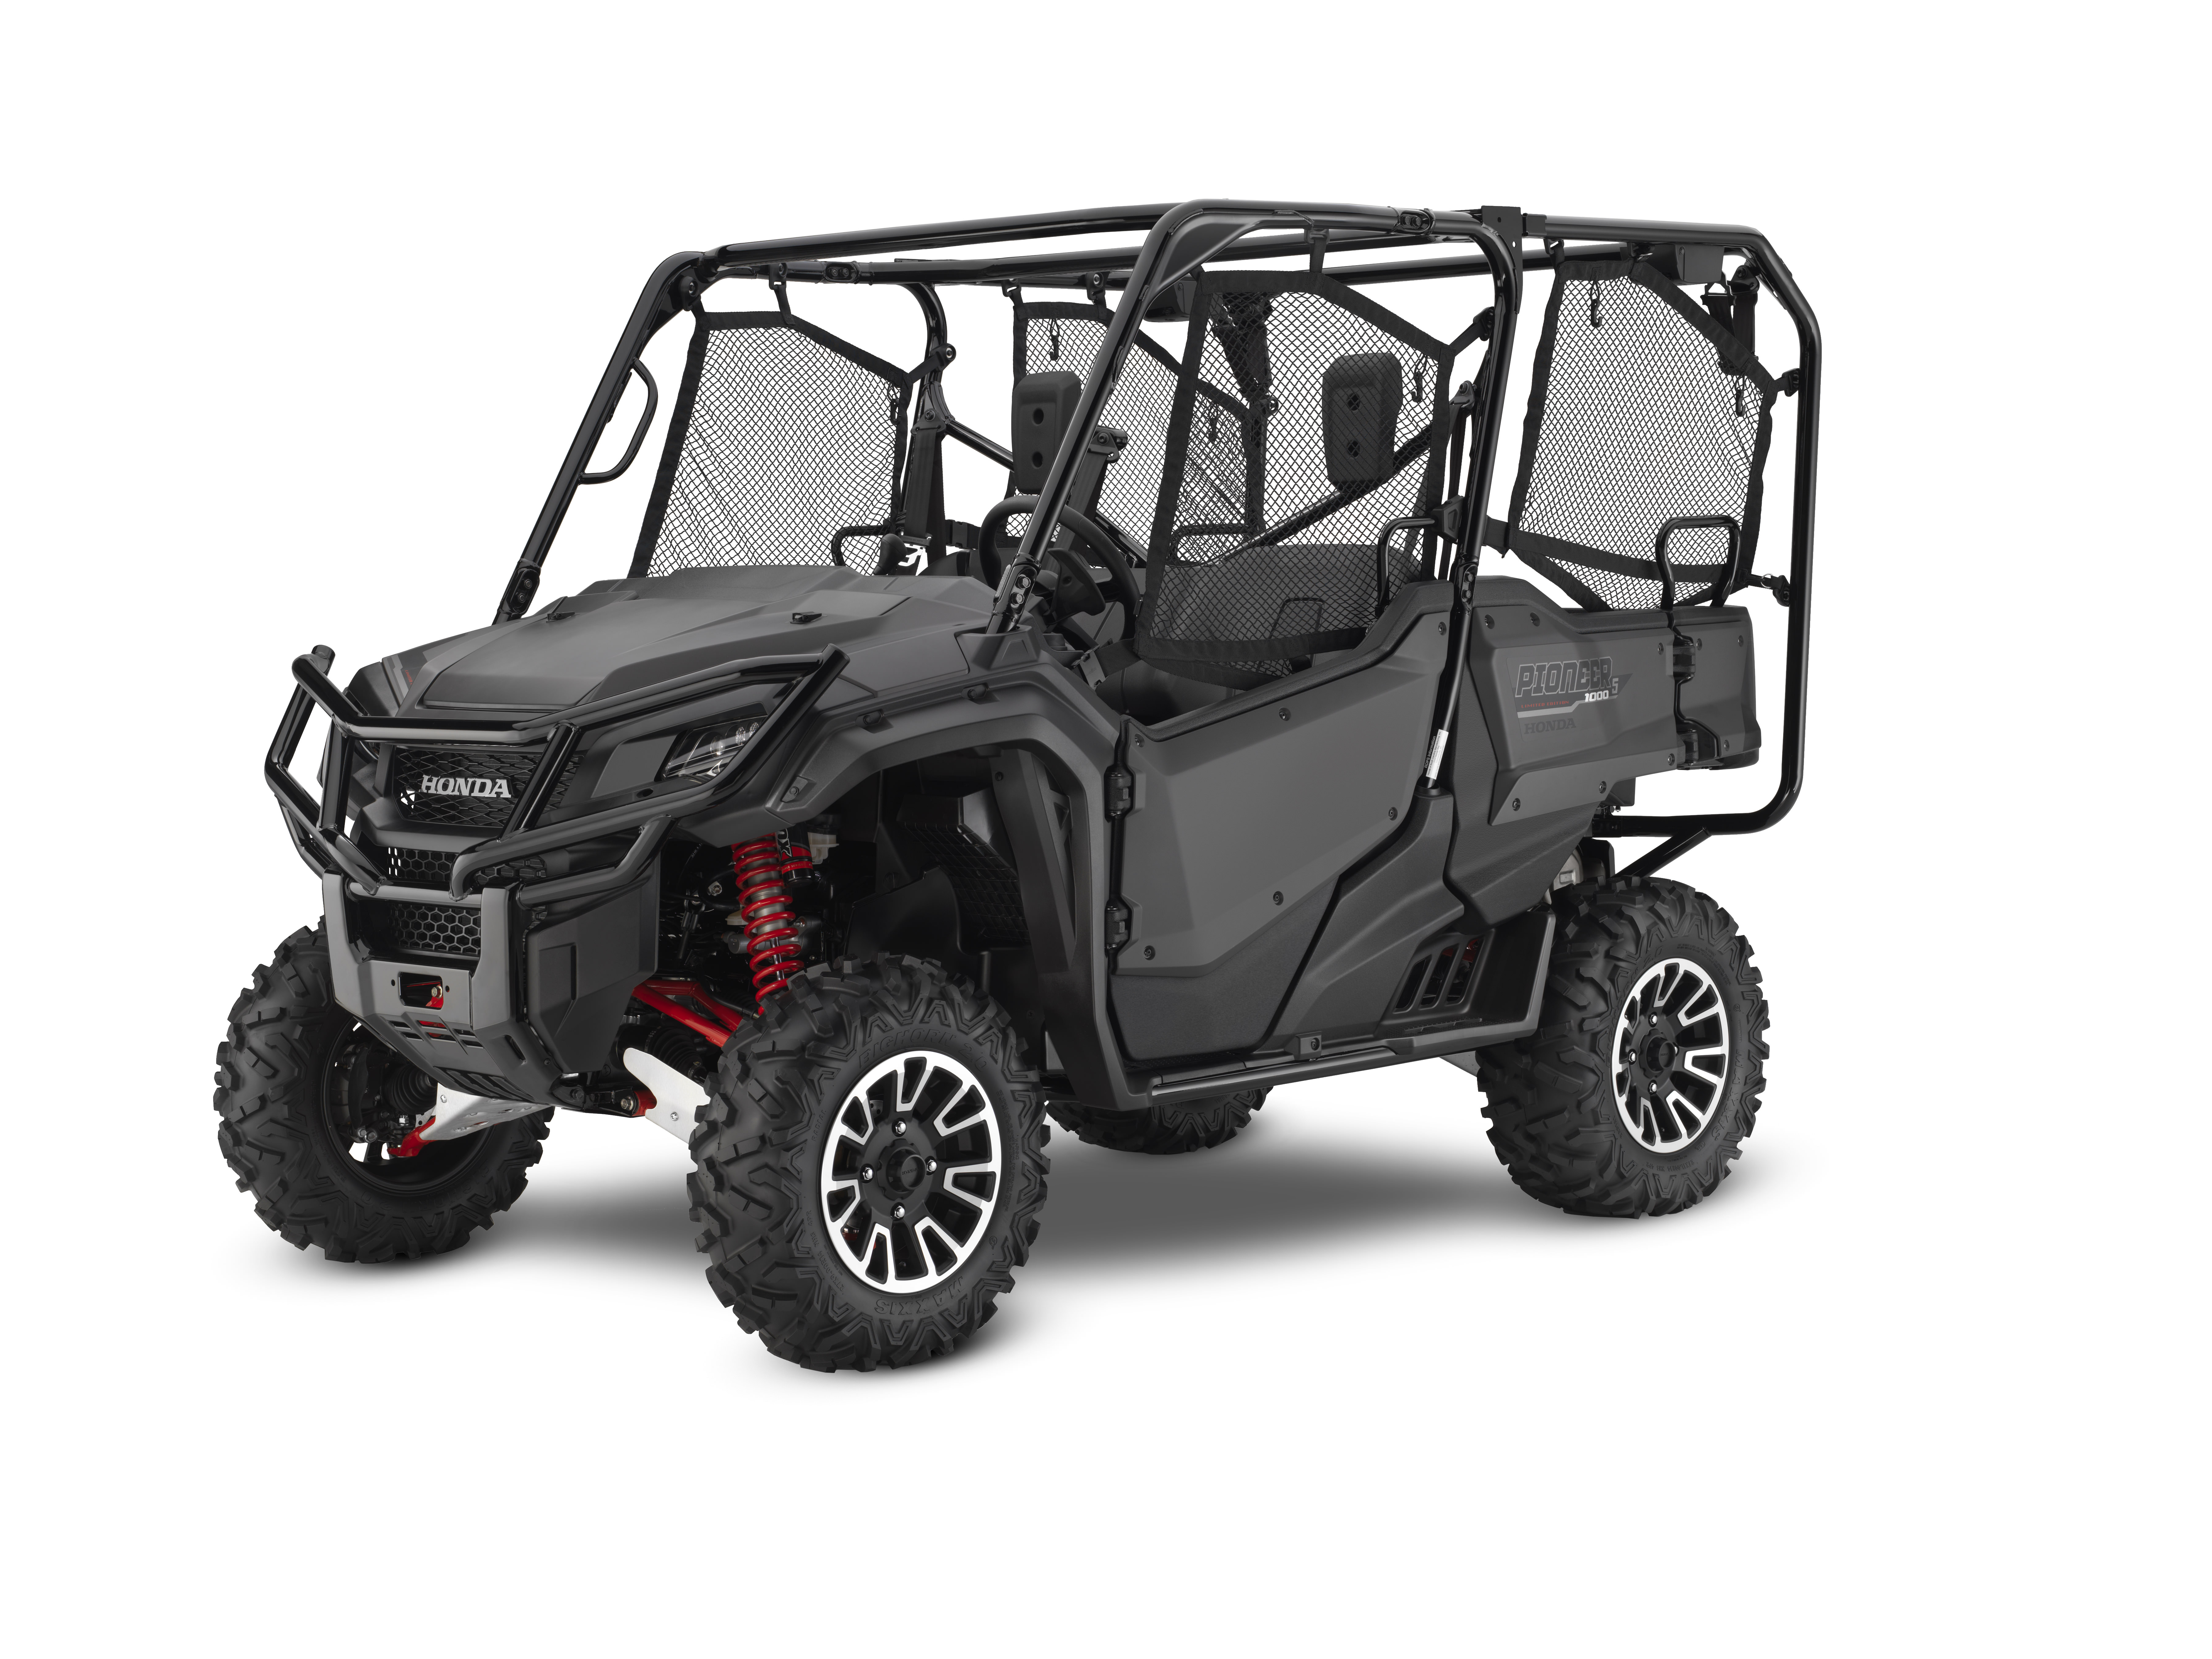 2018 Honda Pioneer 1000-5 LE / Limited Edition Review of Specs